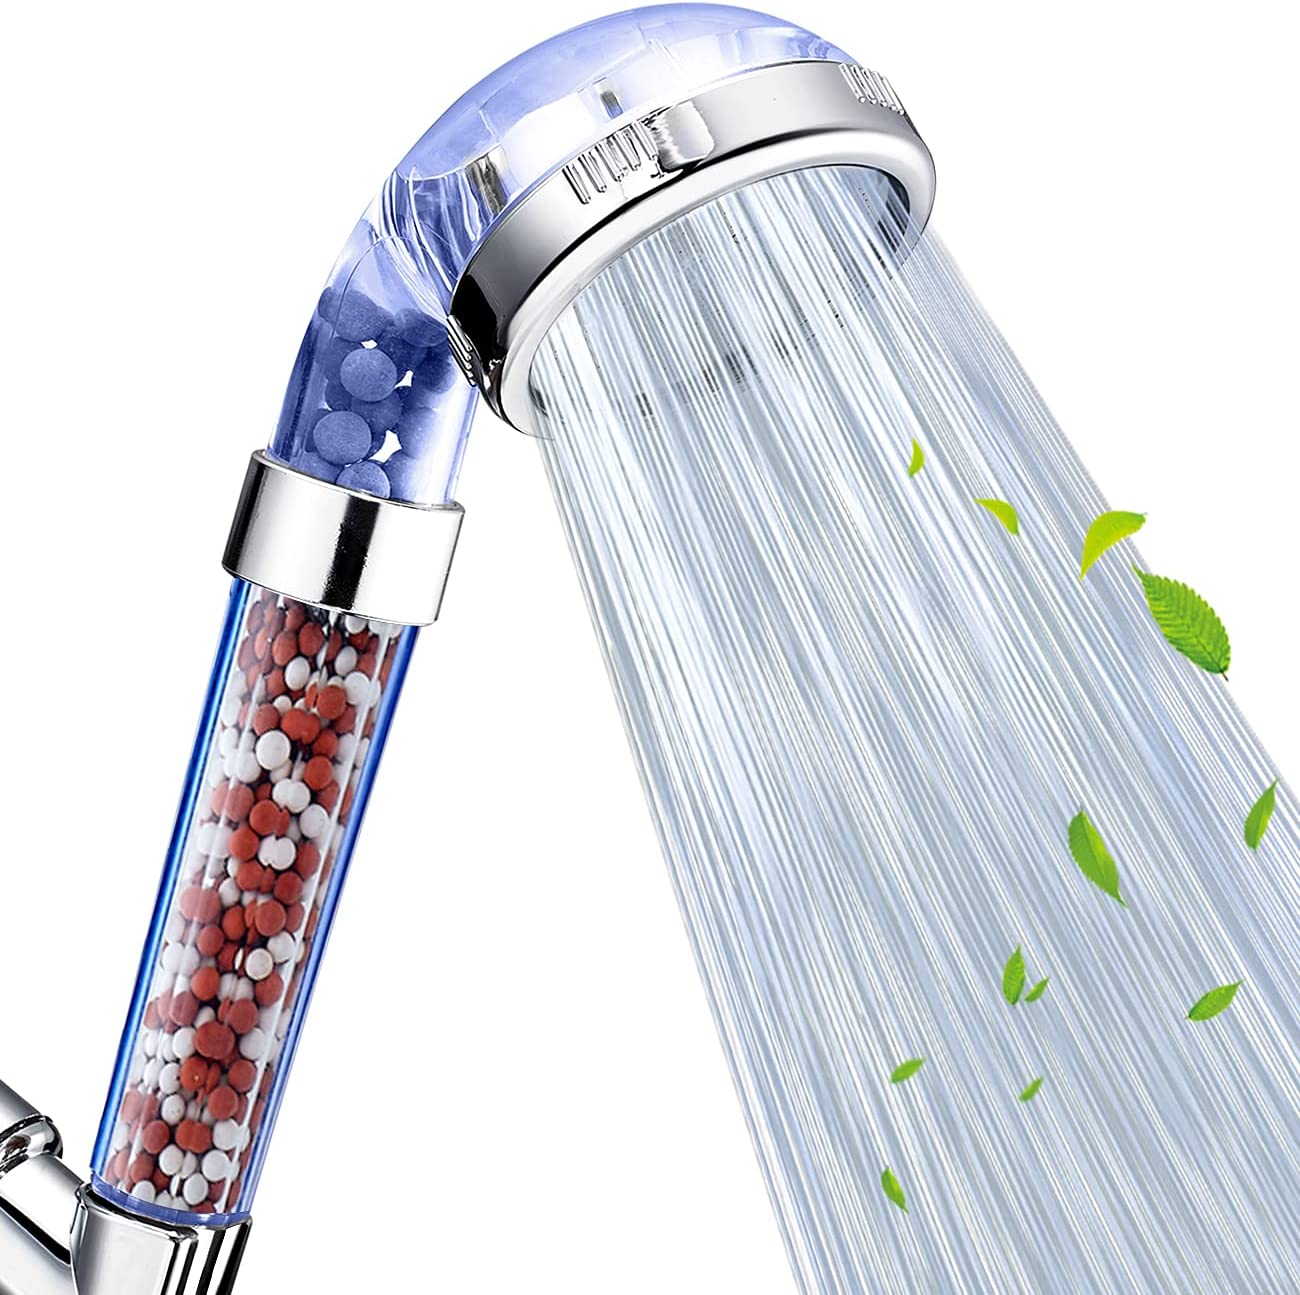 Nosame Shower Head, Filter Filtration High Pressure Water Saving 3 Mode Function Spray Handheld Showerheads for Dry Skin & Hair